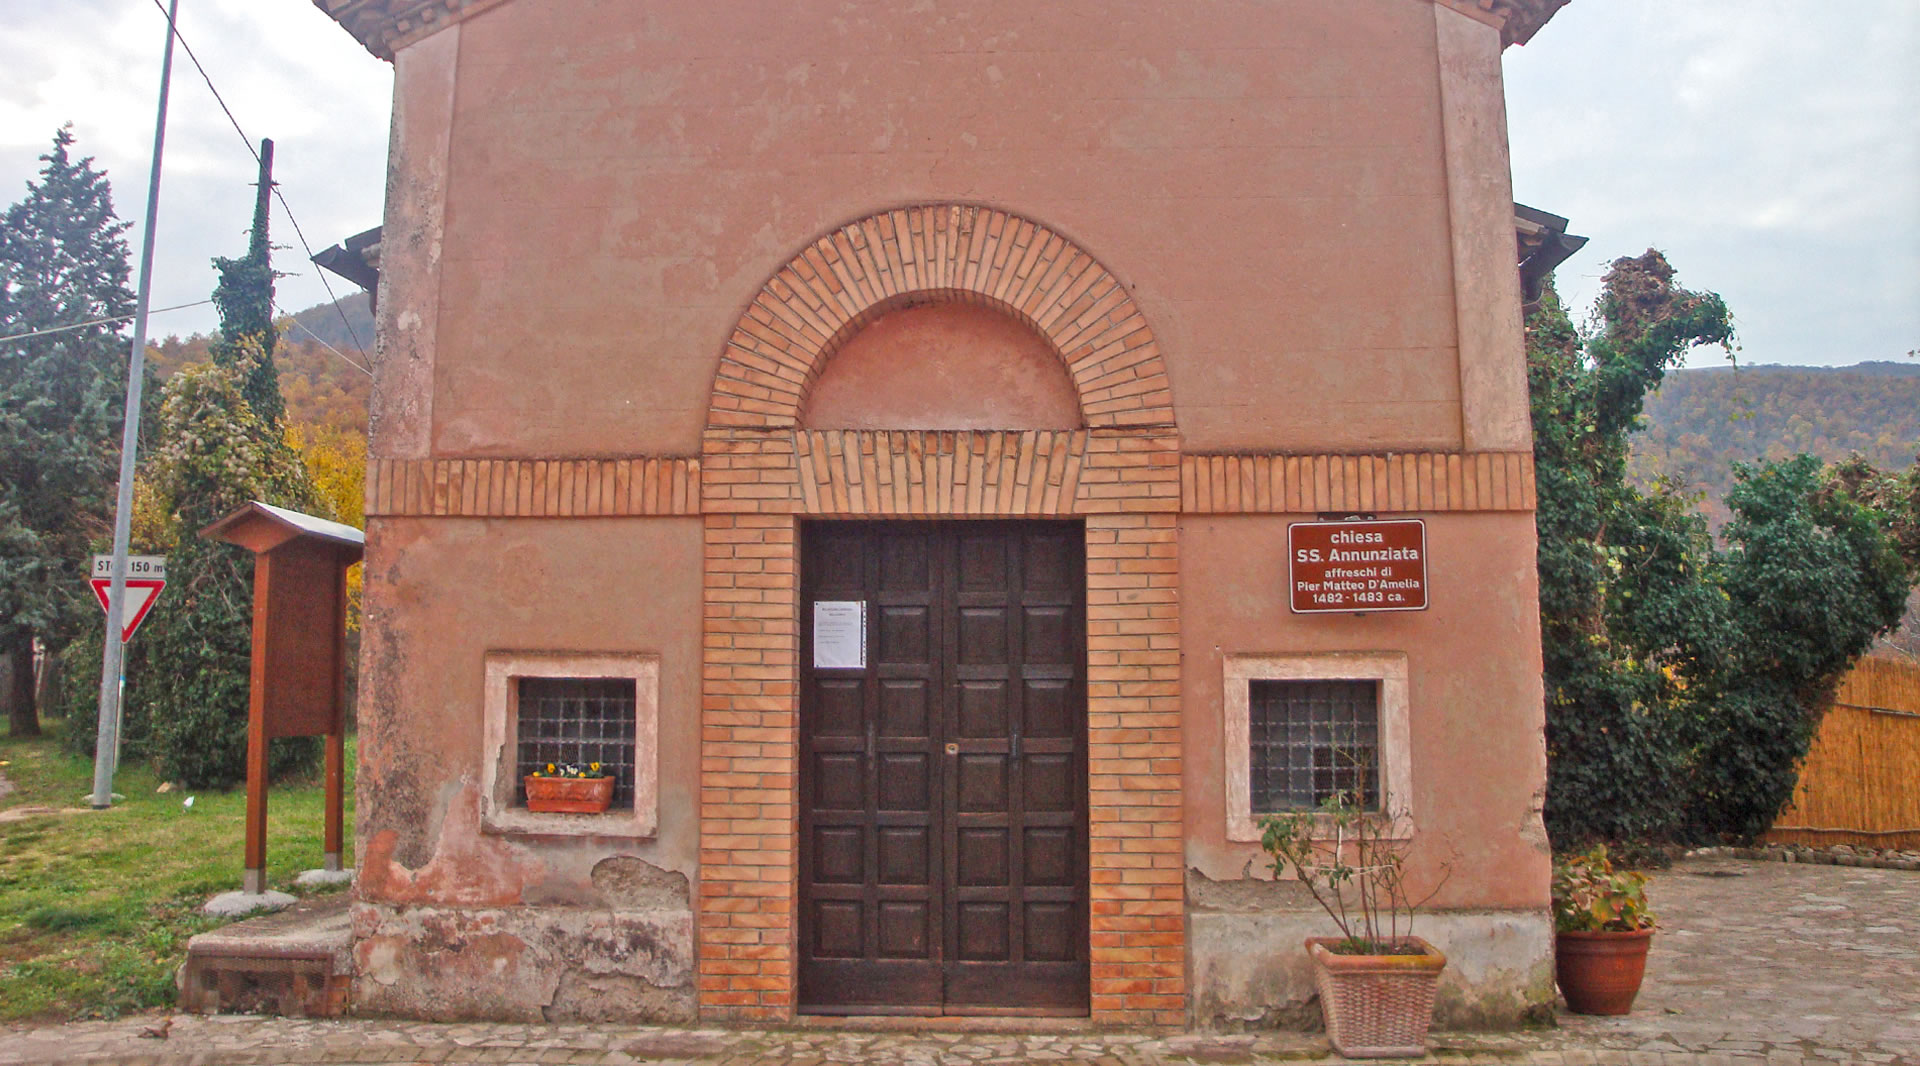 Church of the Madonna dell'Annunziata